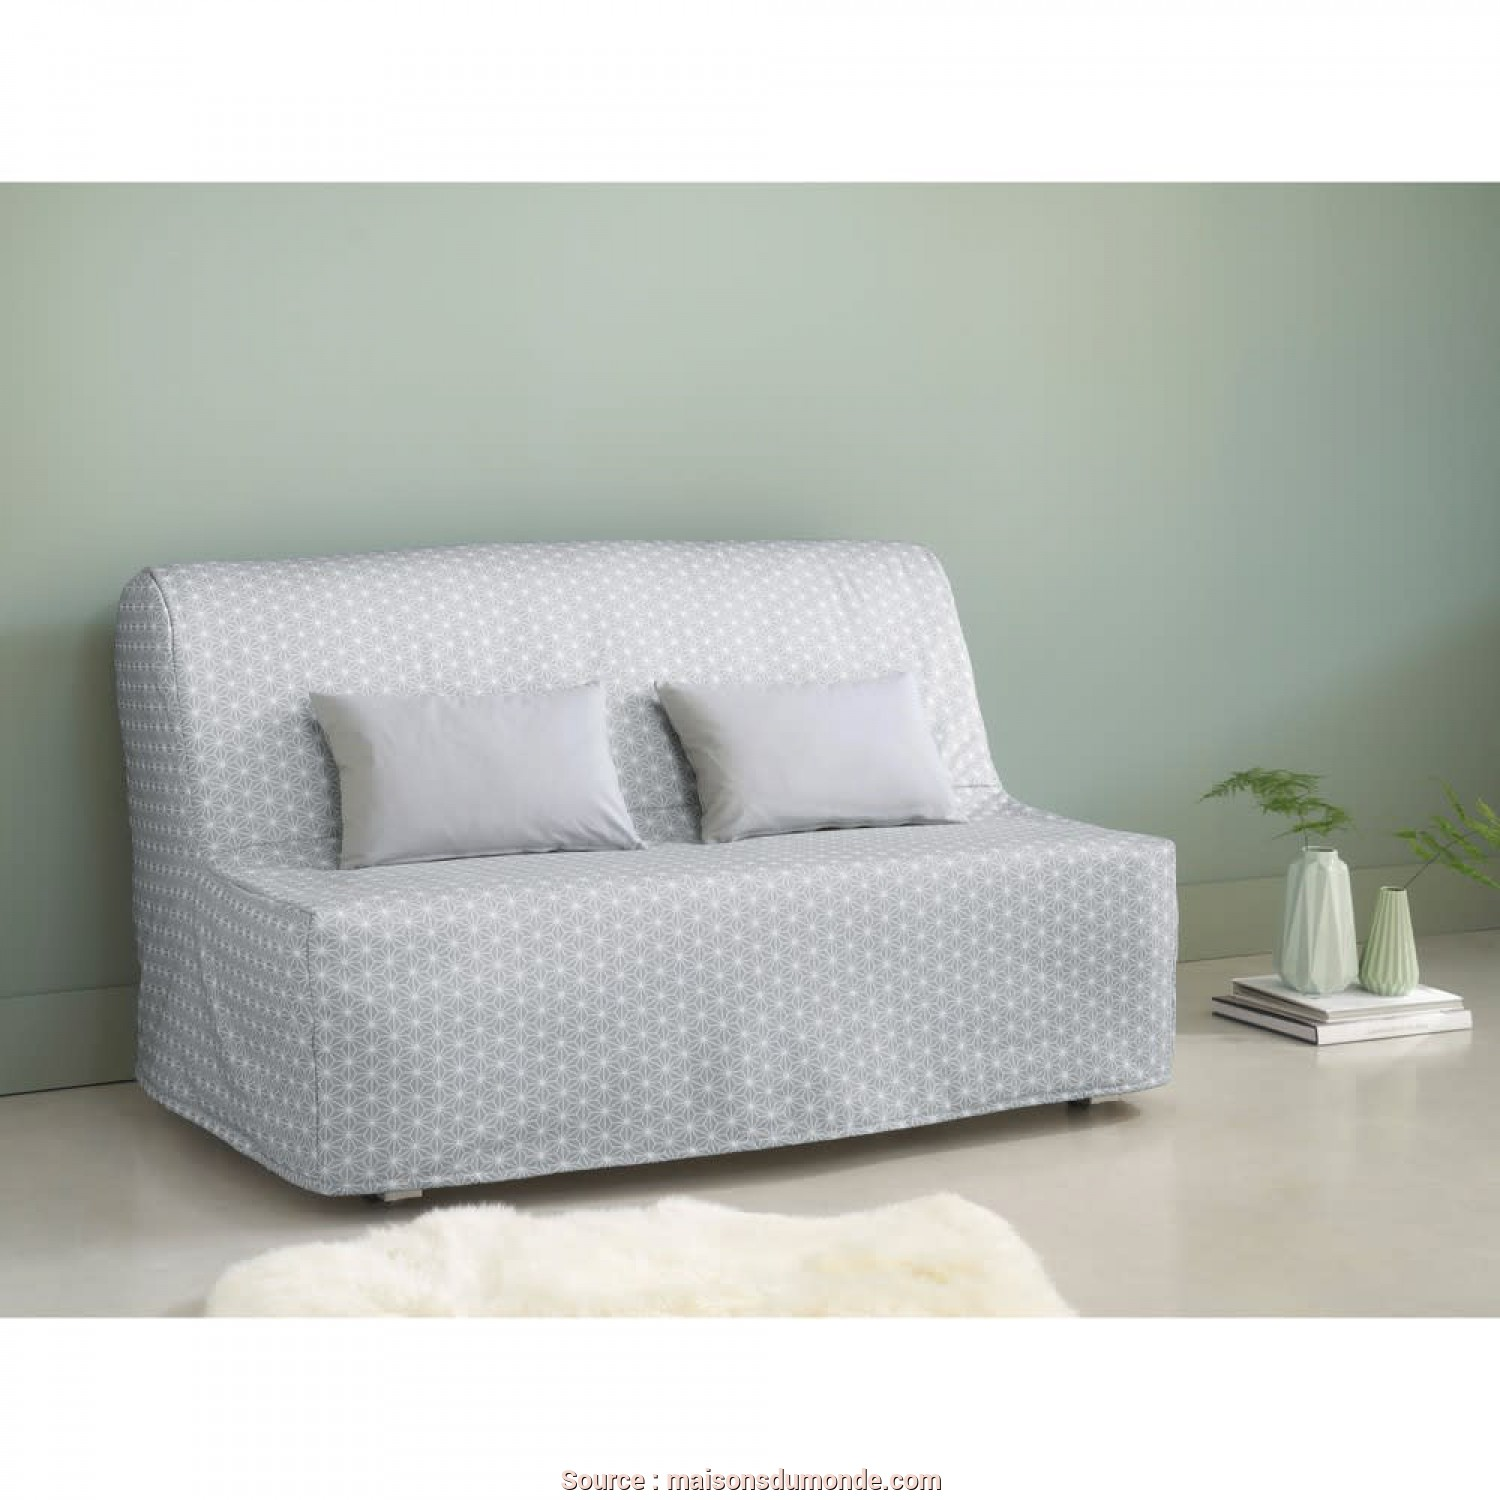 Maison Du Monde Divano Elliot, Deale 2 Seater Z-Bed Sofa Elliot